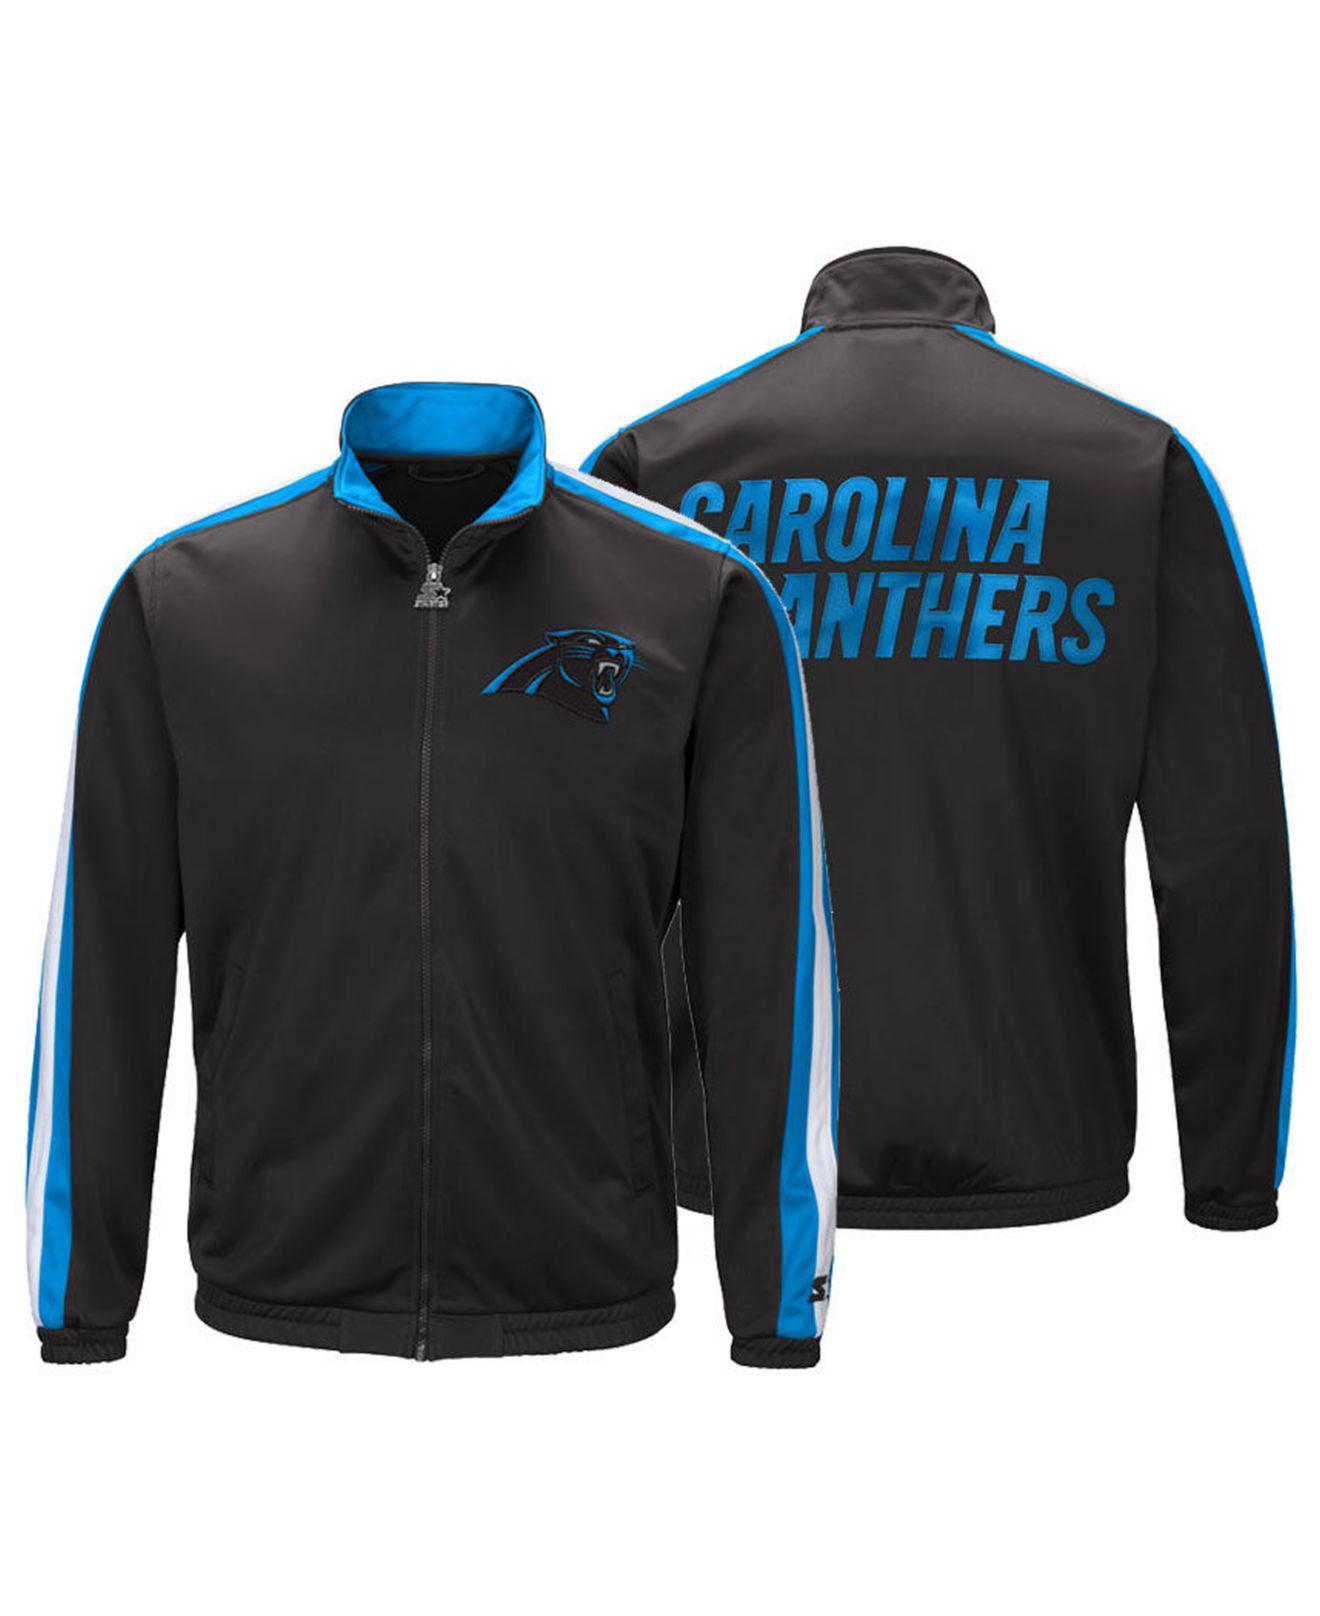 brand new 2c2d4 0c6d1 Starter Carolina Panthers The Challenger Track Jacket in ...